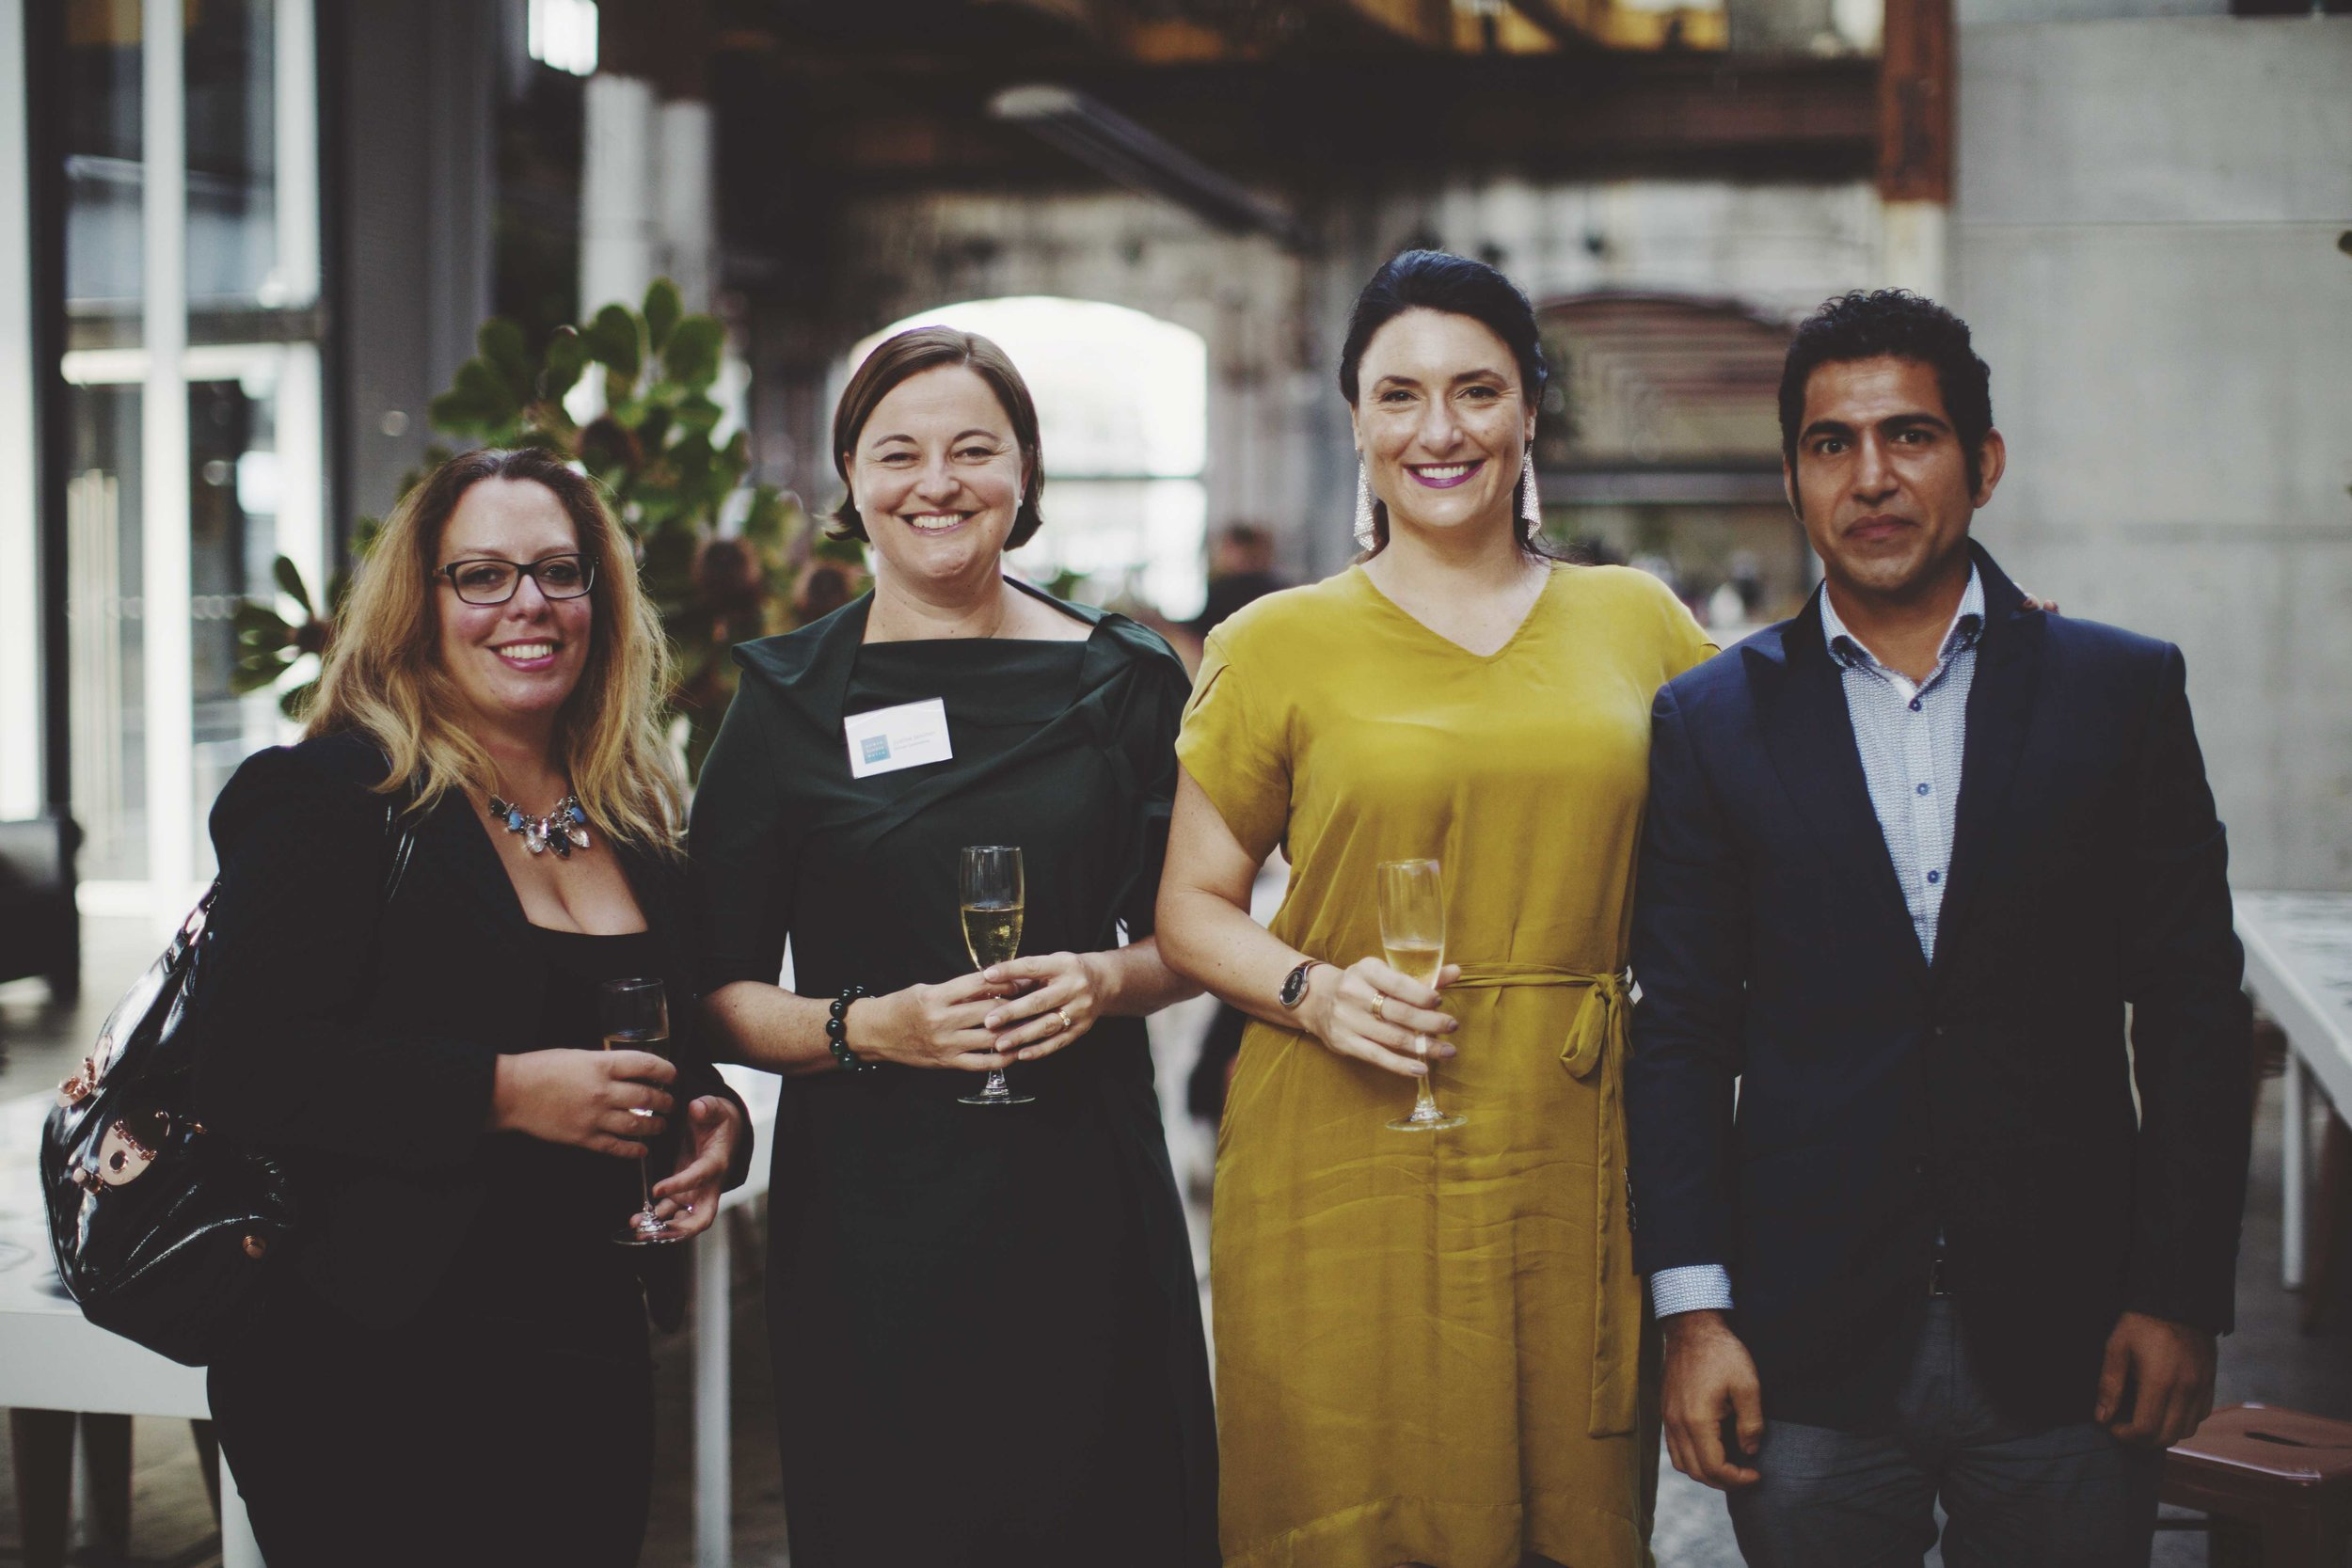 Shooting for HRW's annual charity event held at Sydney's Carriageworks